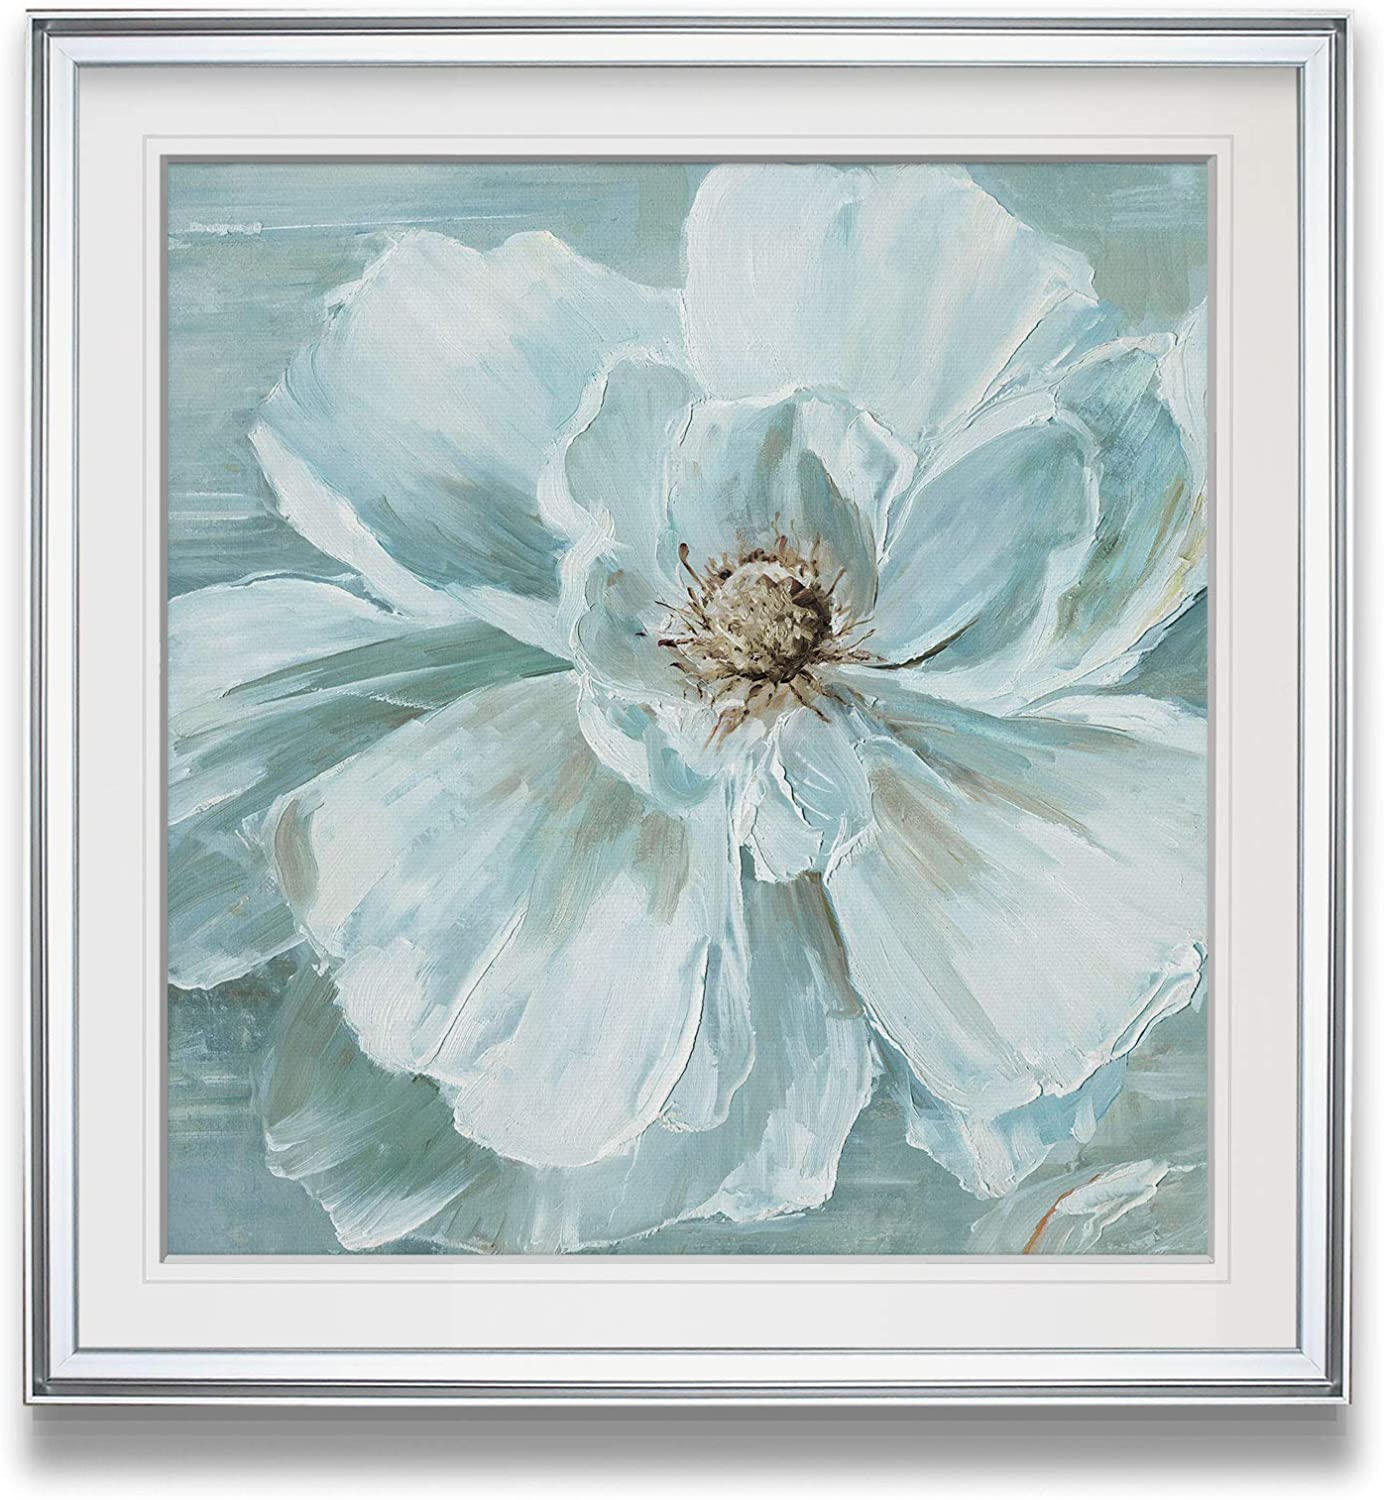 Amazon Com Renditions Gallery Blue Bloomin Beauty I Pastel Anemone Flower Pictures Home Decor Contemporary Wall Art Framed Giclee Prints 24 X Silver Posters